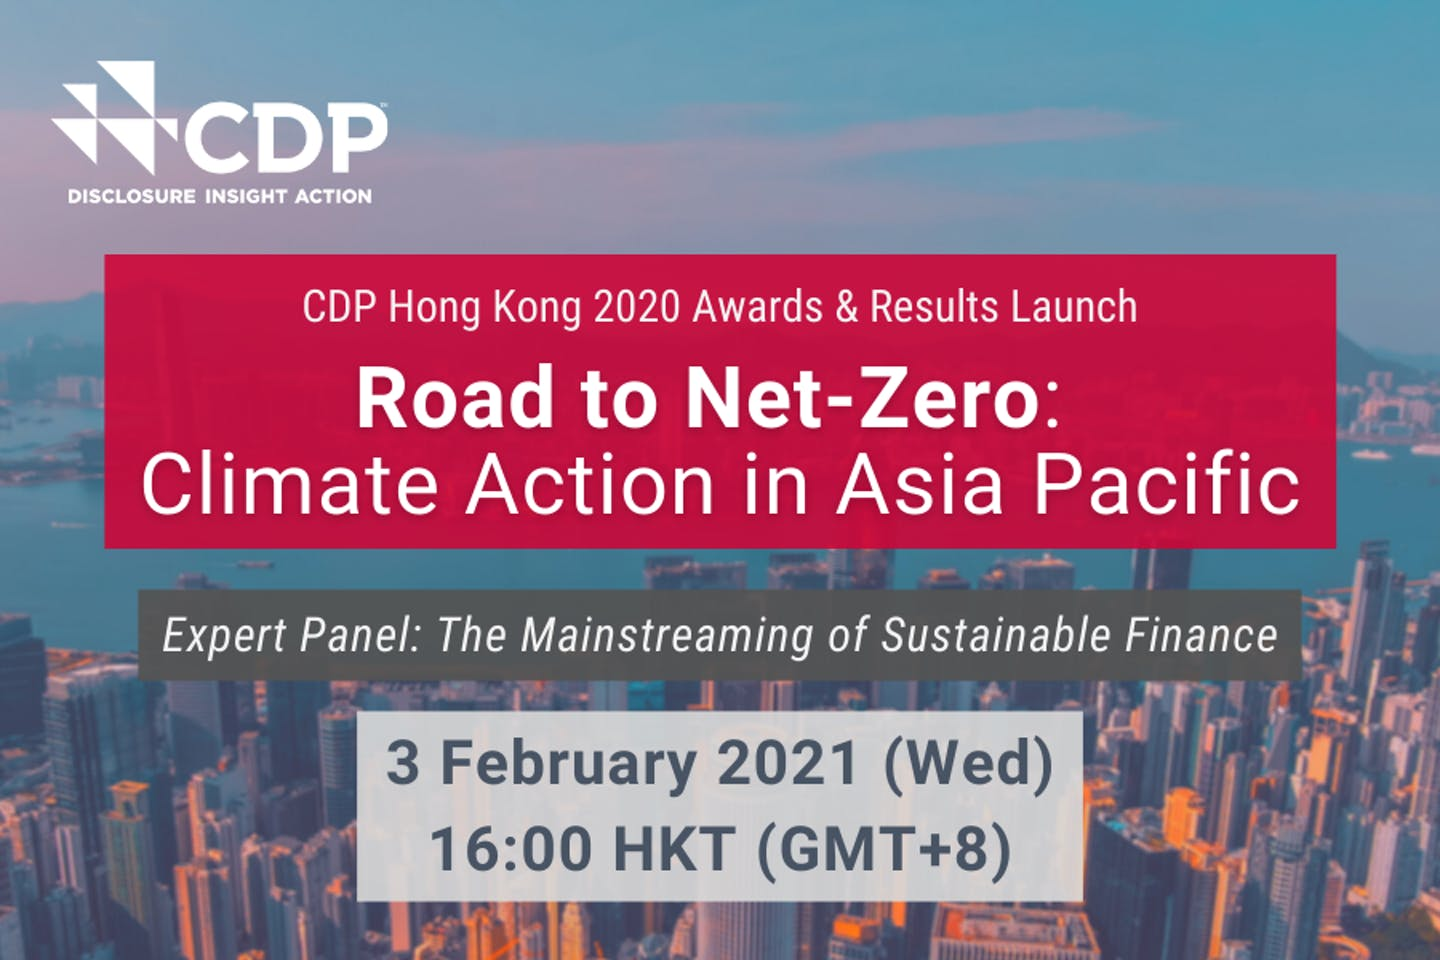 [Webinar] Road to Net-Zero: Climate Action in Asia Pacific | 3 February | CDP Annual Awards Launch